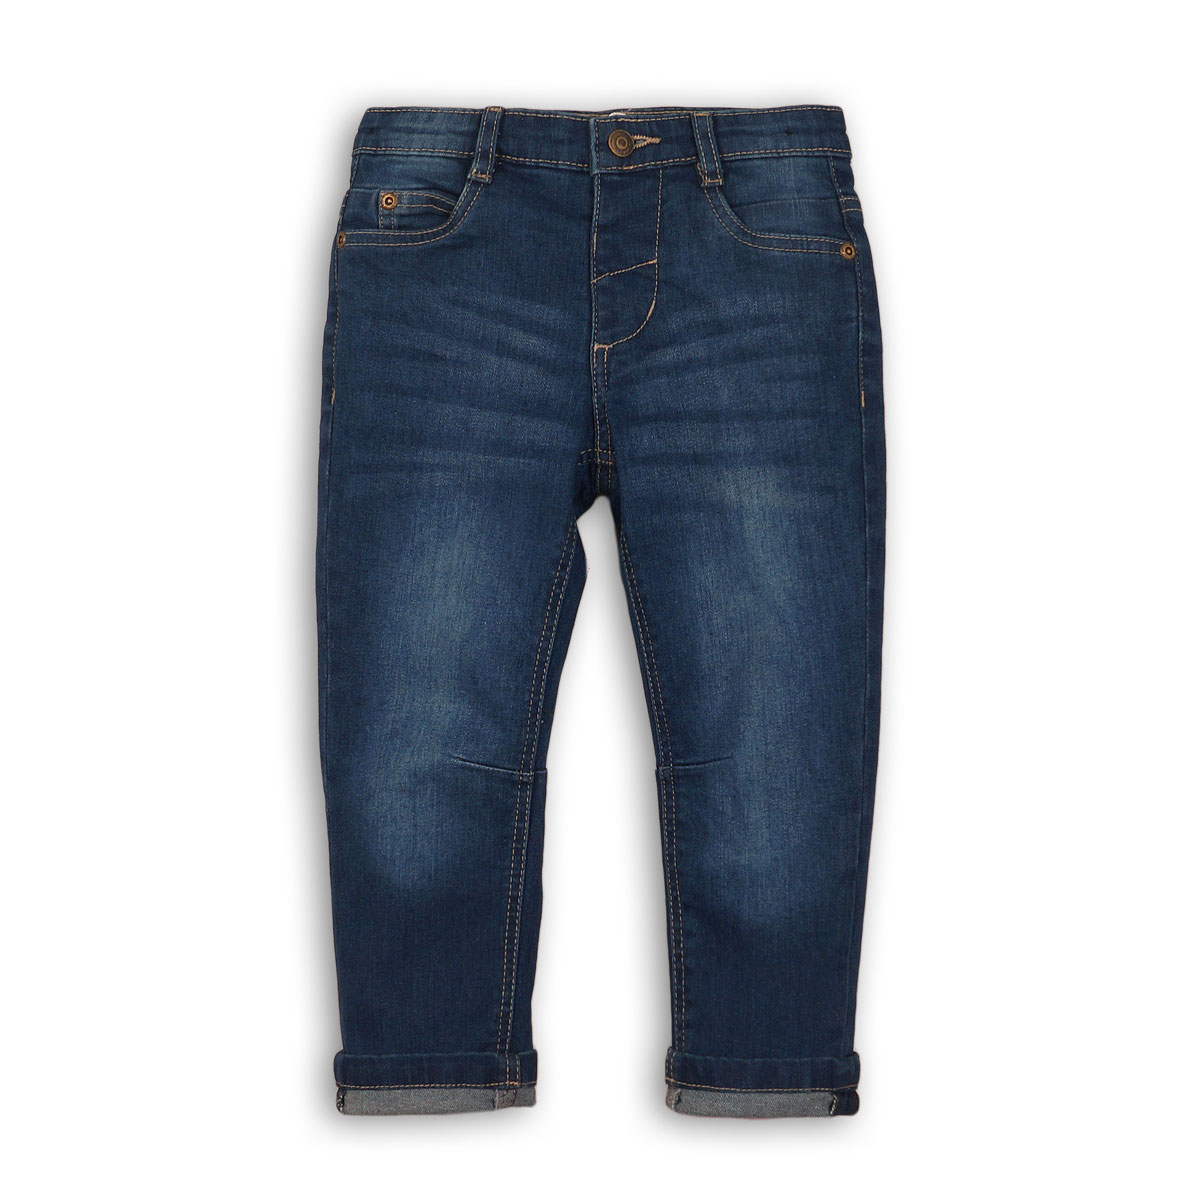 Pantaloni scurti denim, Minoti Springs